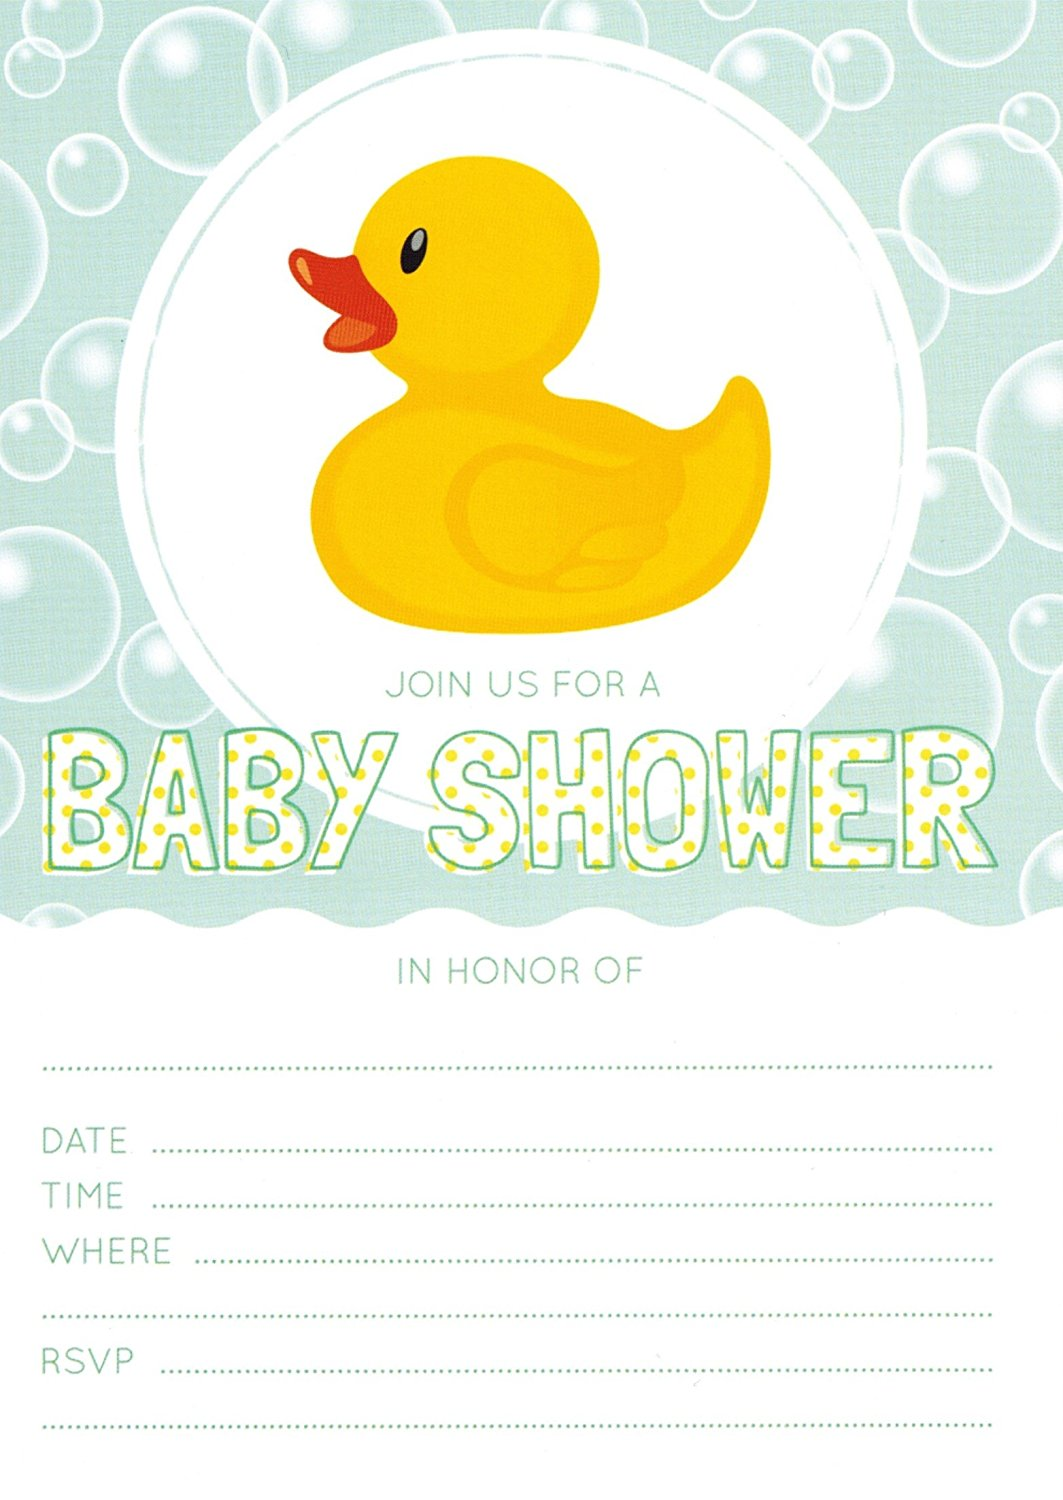 Rubber Ducky Baby Shower Invitations - 48 Invites and 48 Envelopes